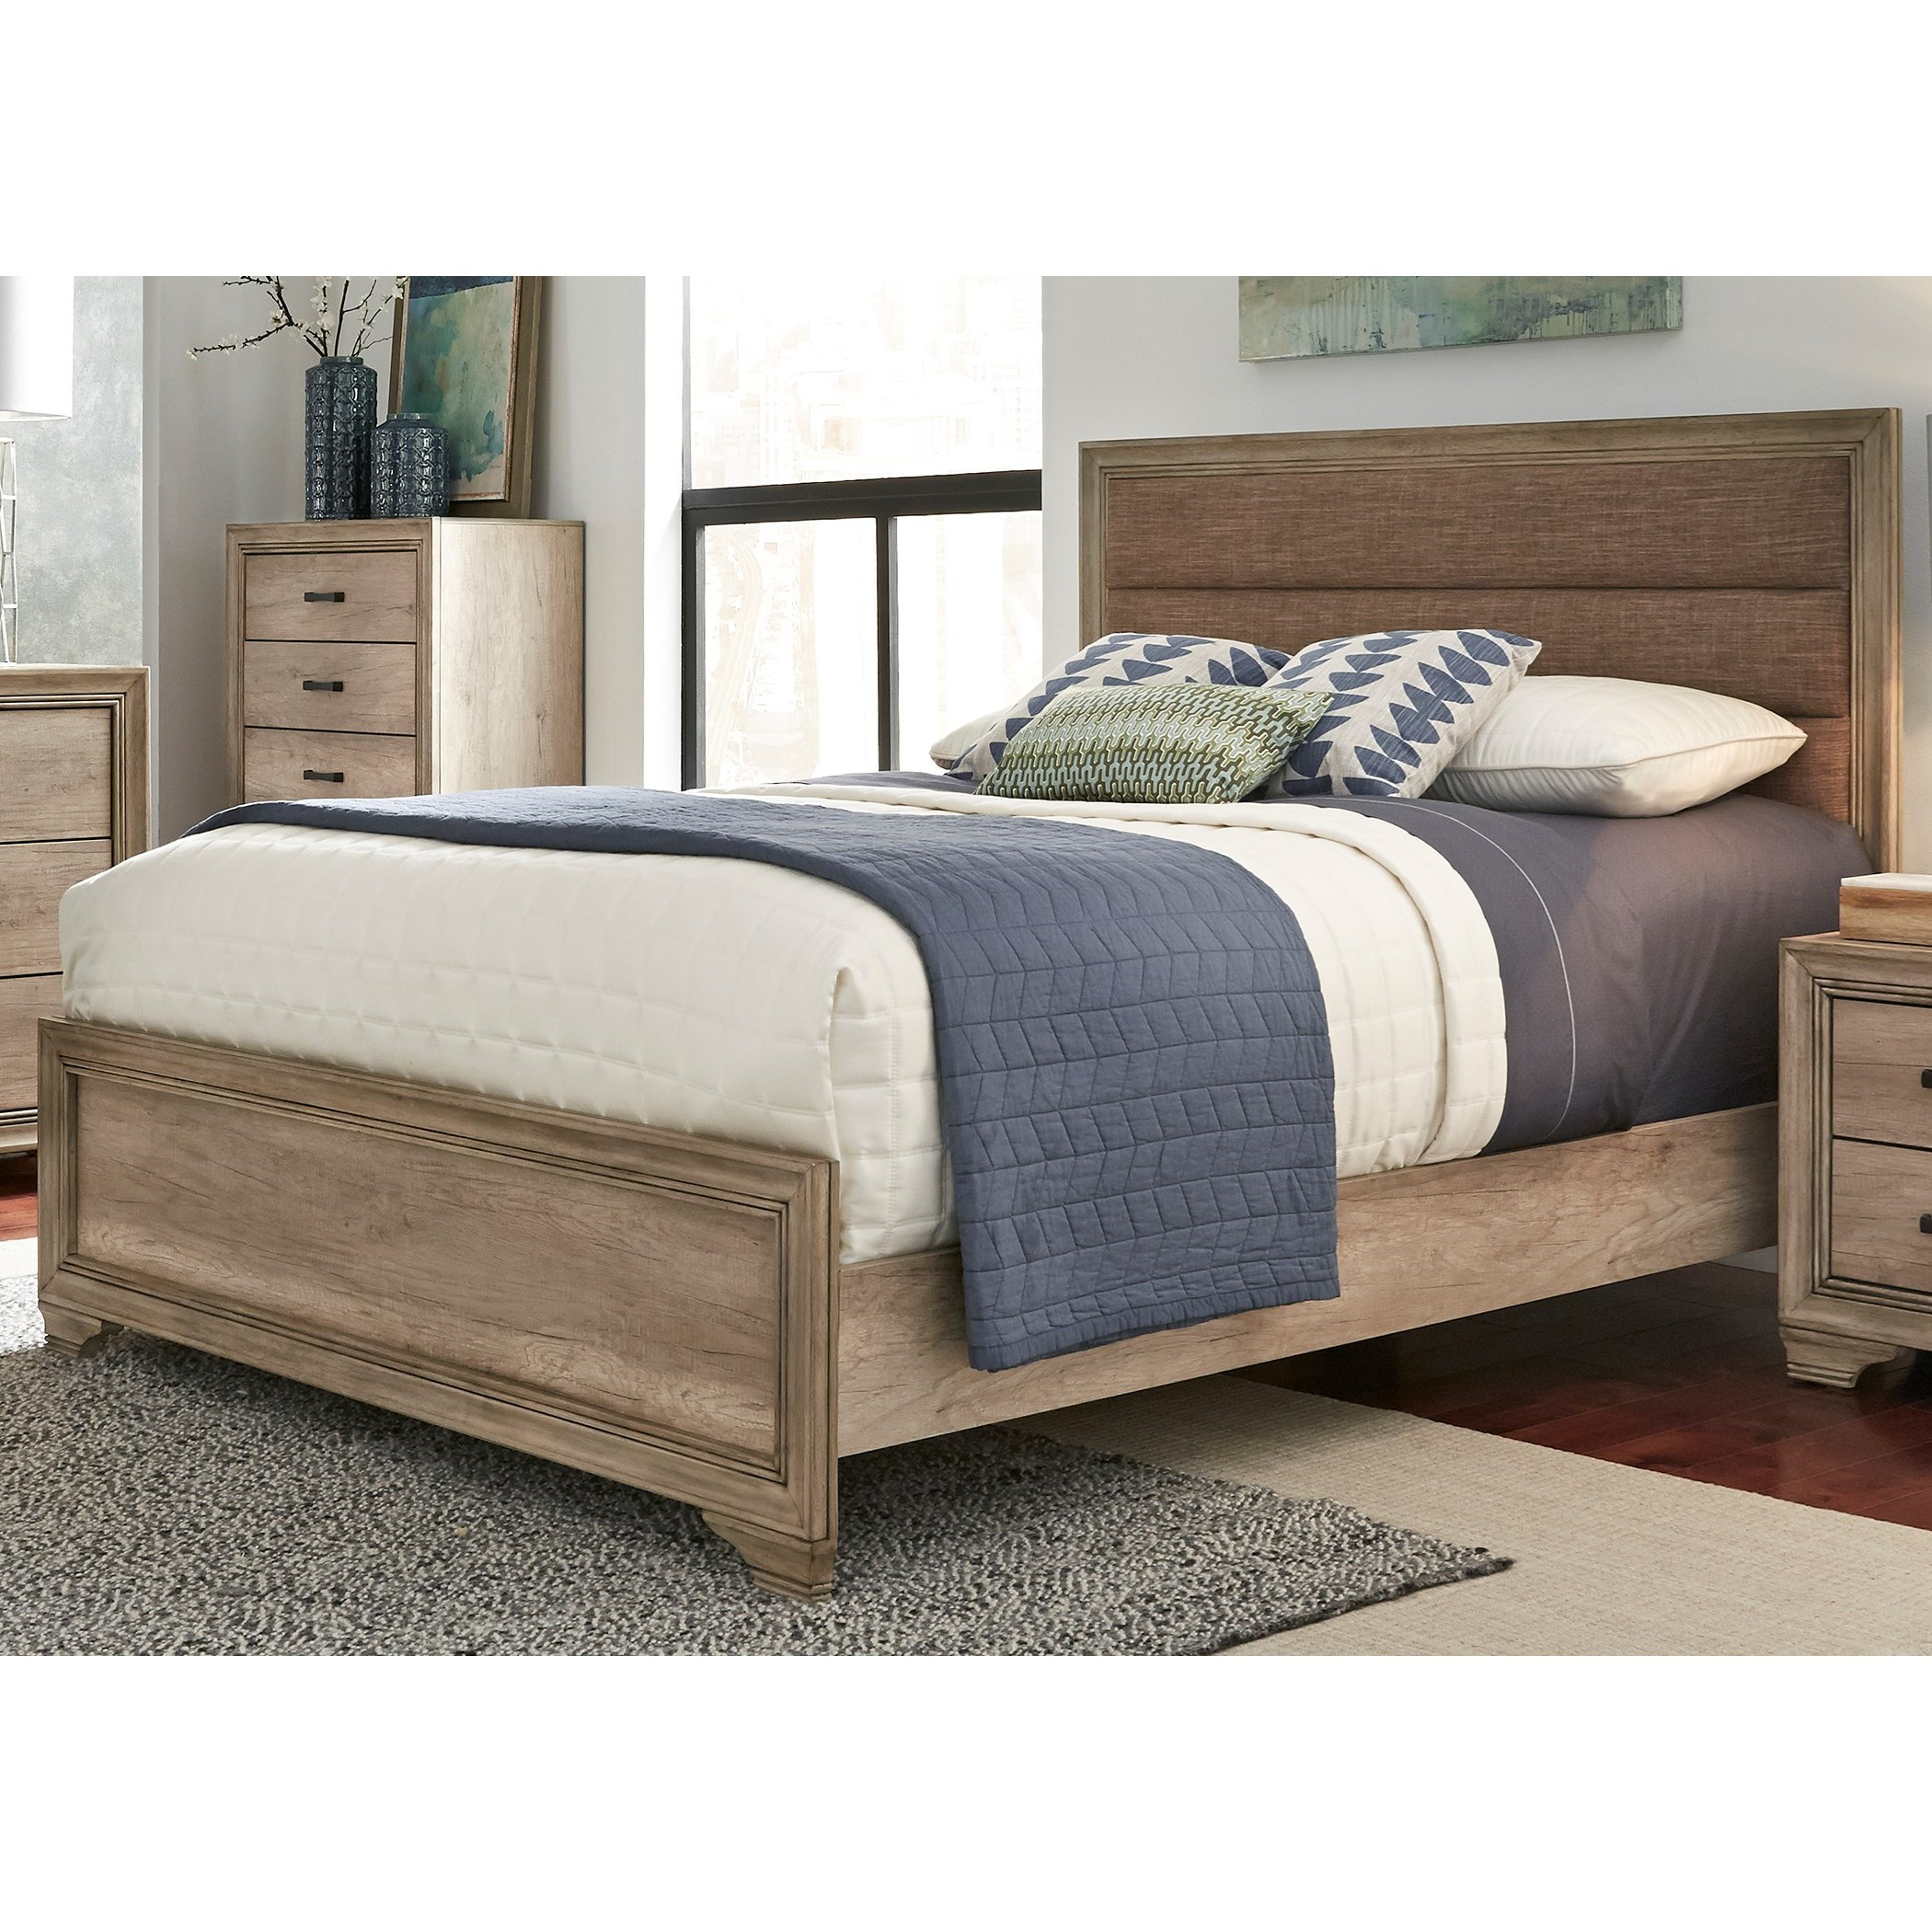 Sun Valley Queen Upholstered Panel Bed by Libby at Walker's Furniture